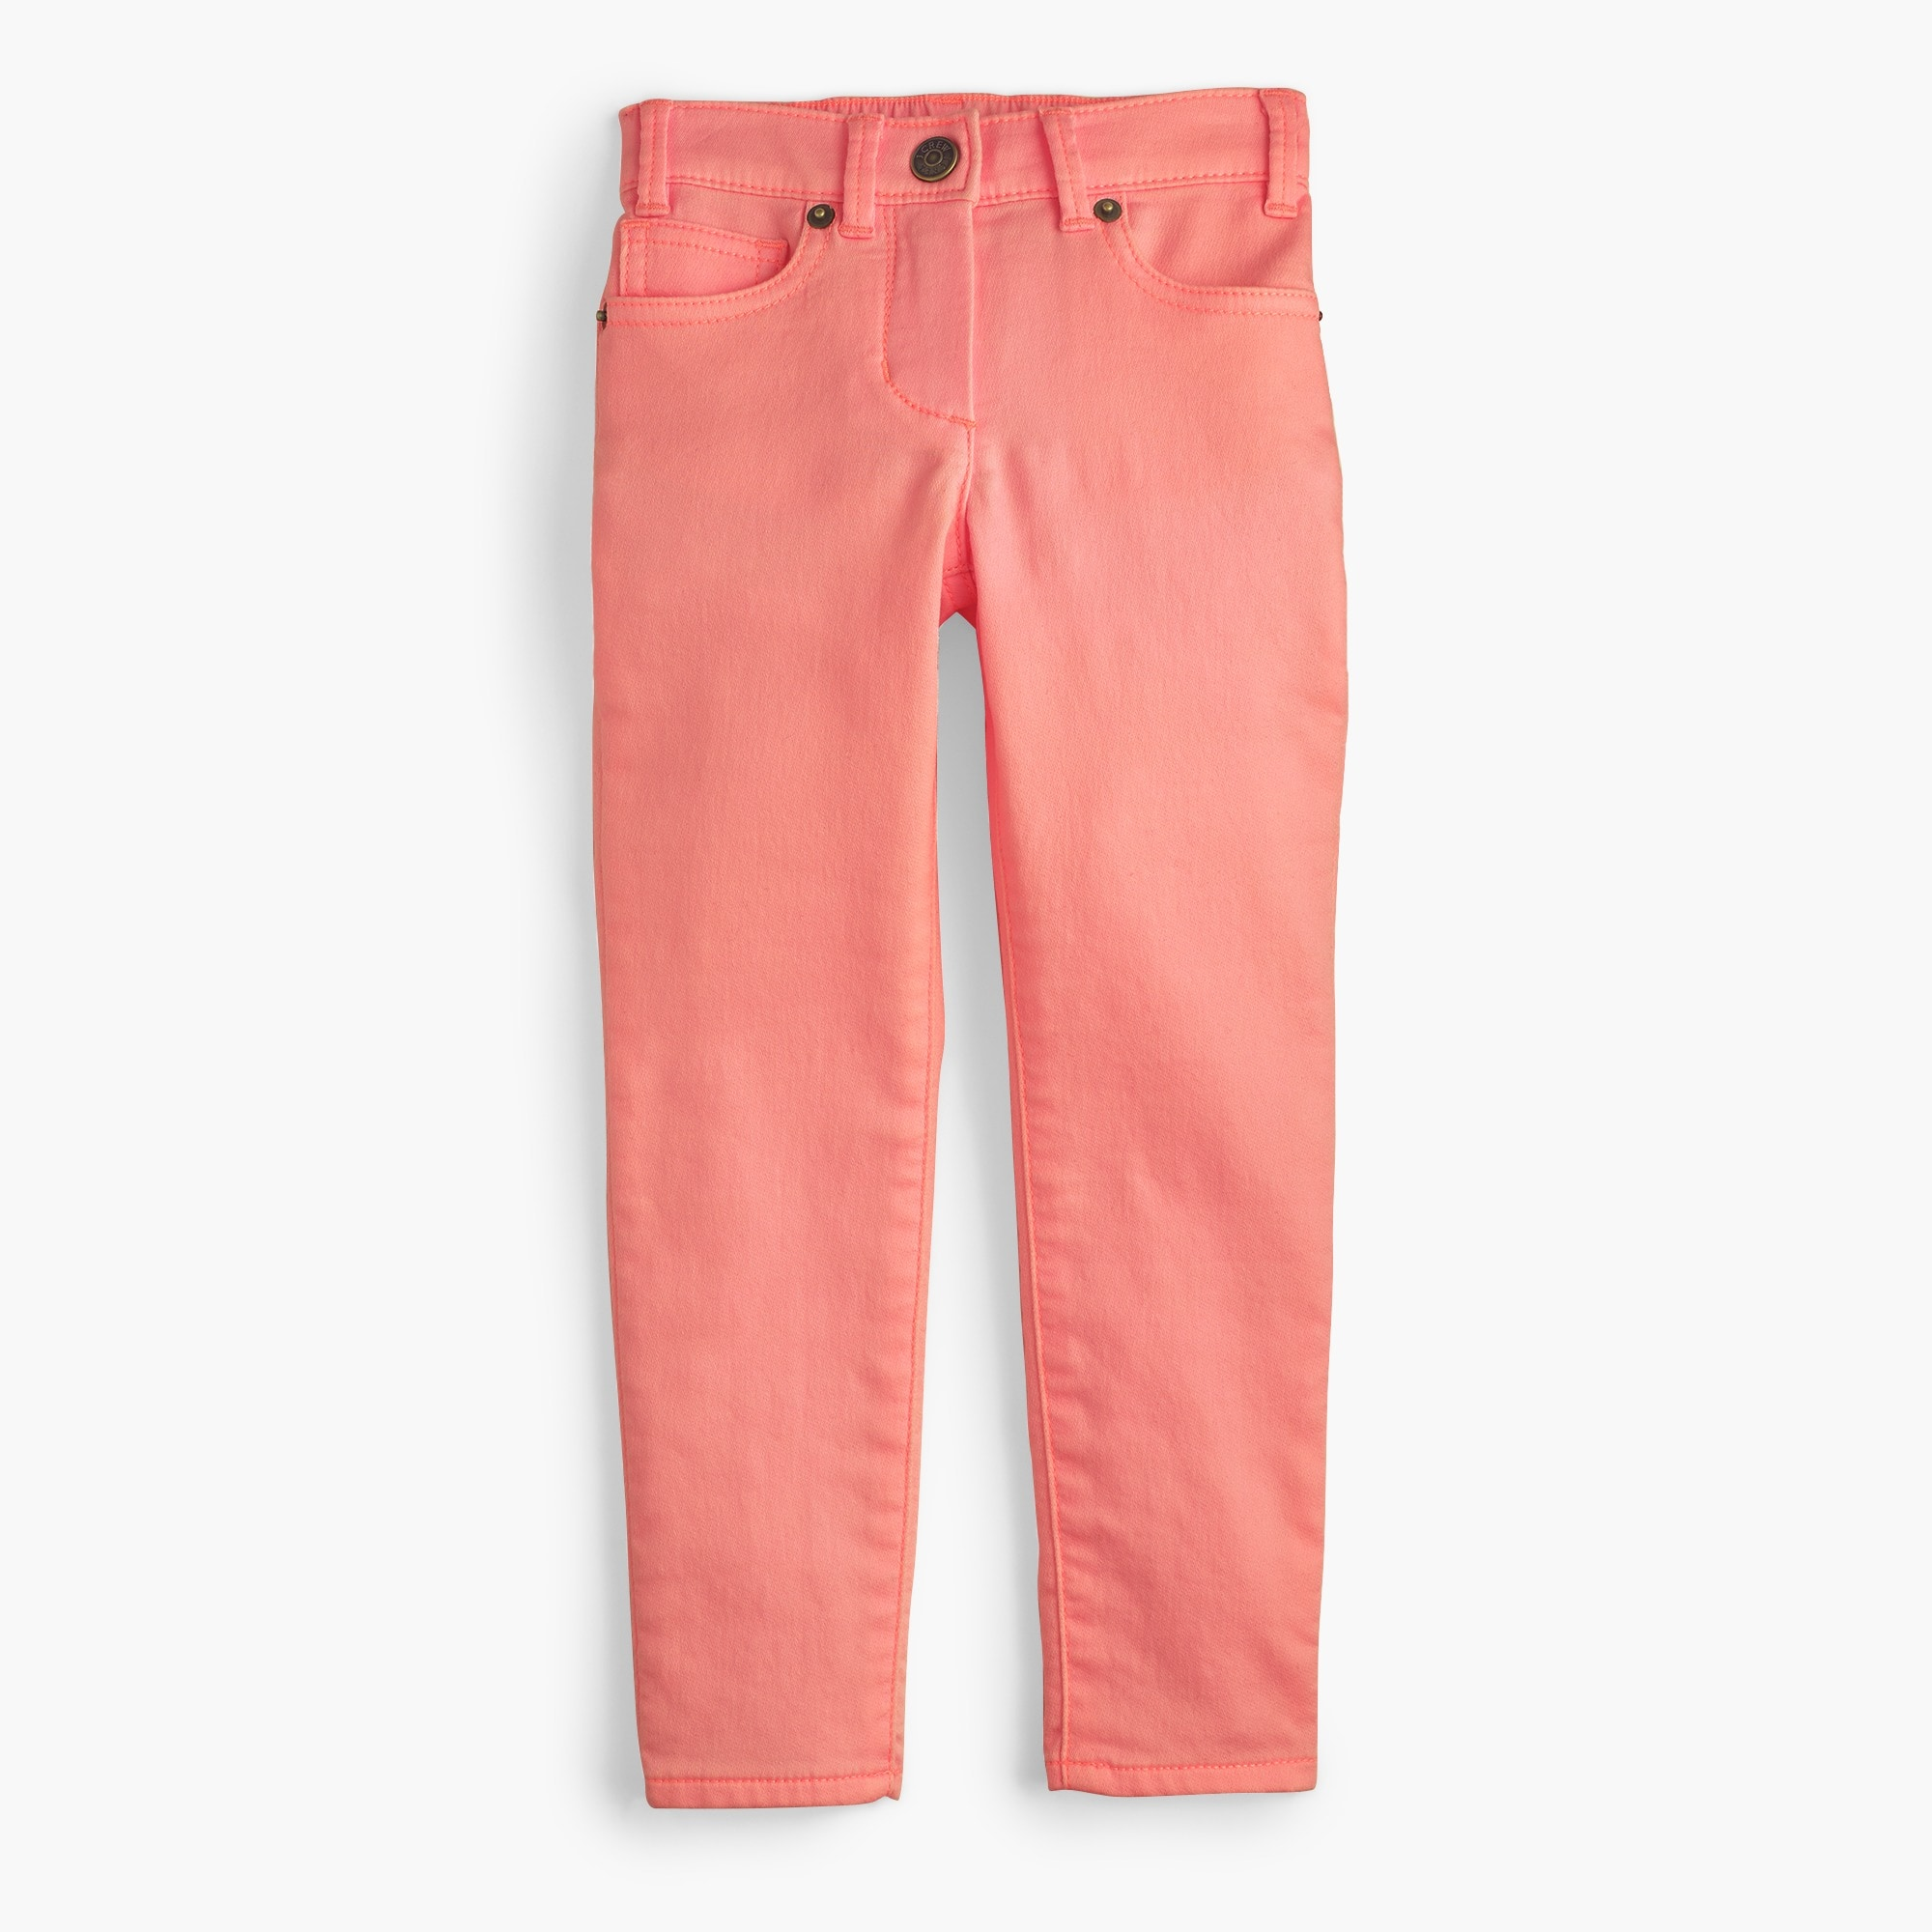 Girls' garment-dyed runaround jeans girl pants c